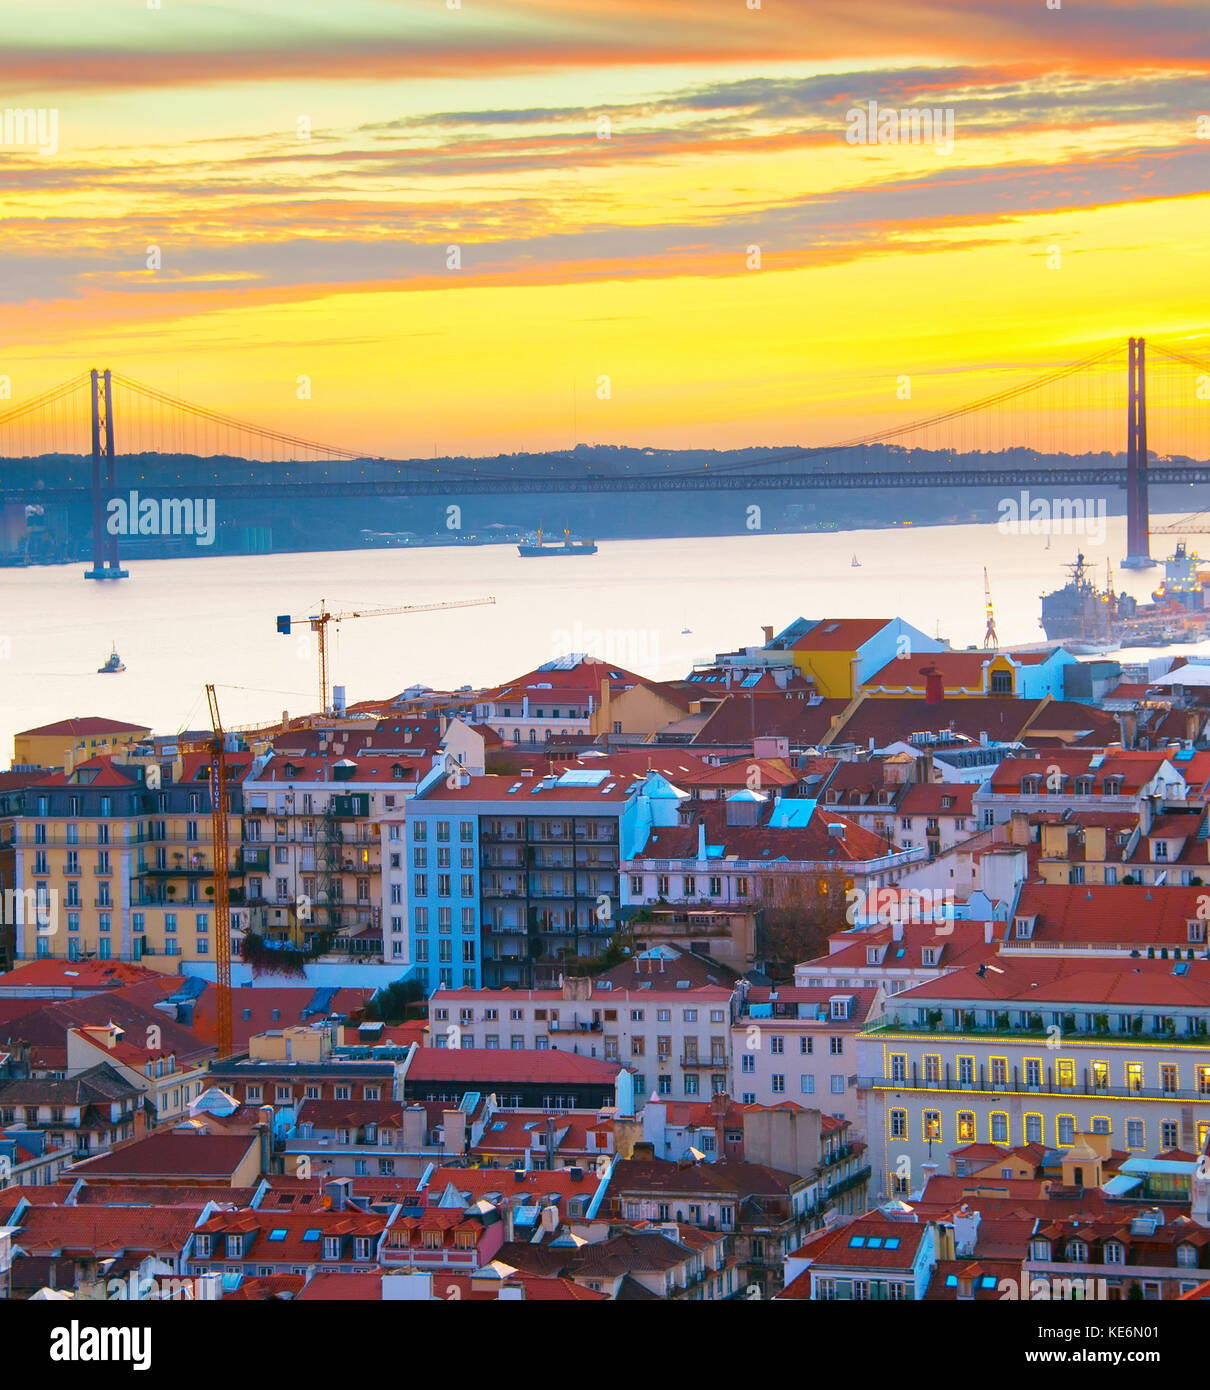 Belle vieille ville de Lisbonne, Portugal, au coucher du soleil Photo Stock